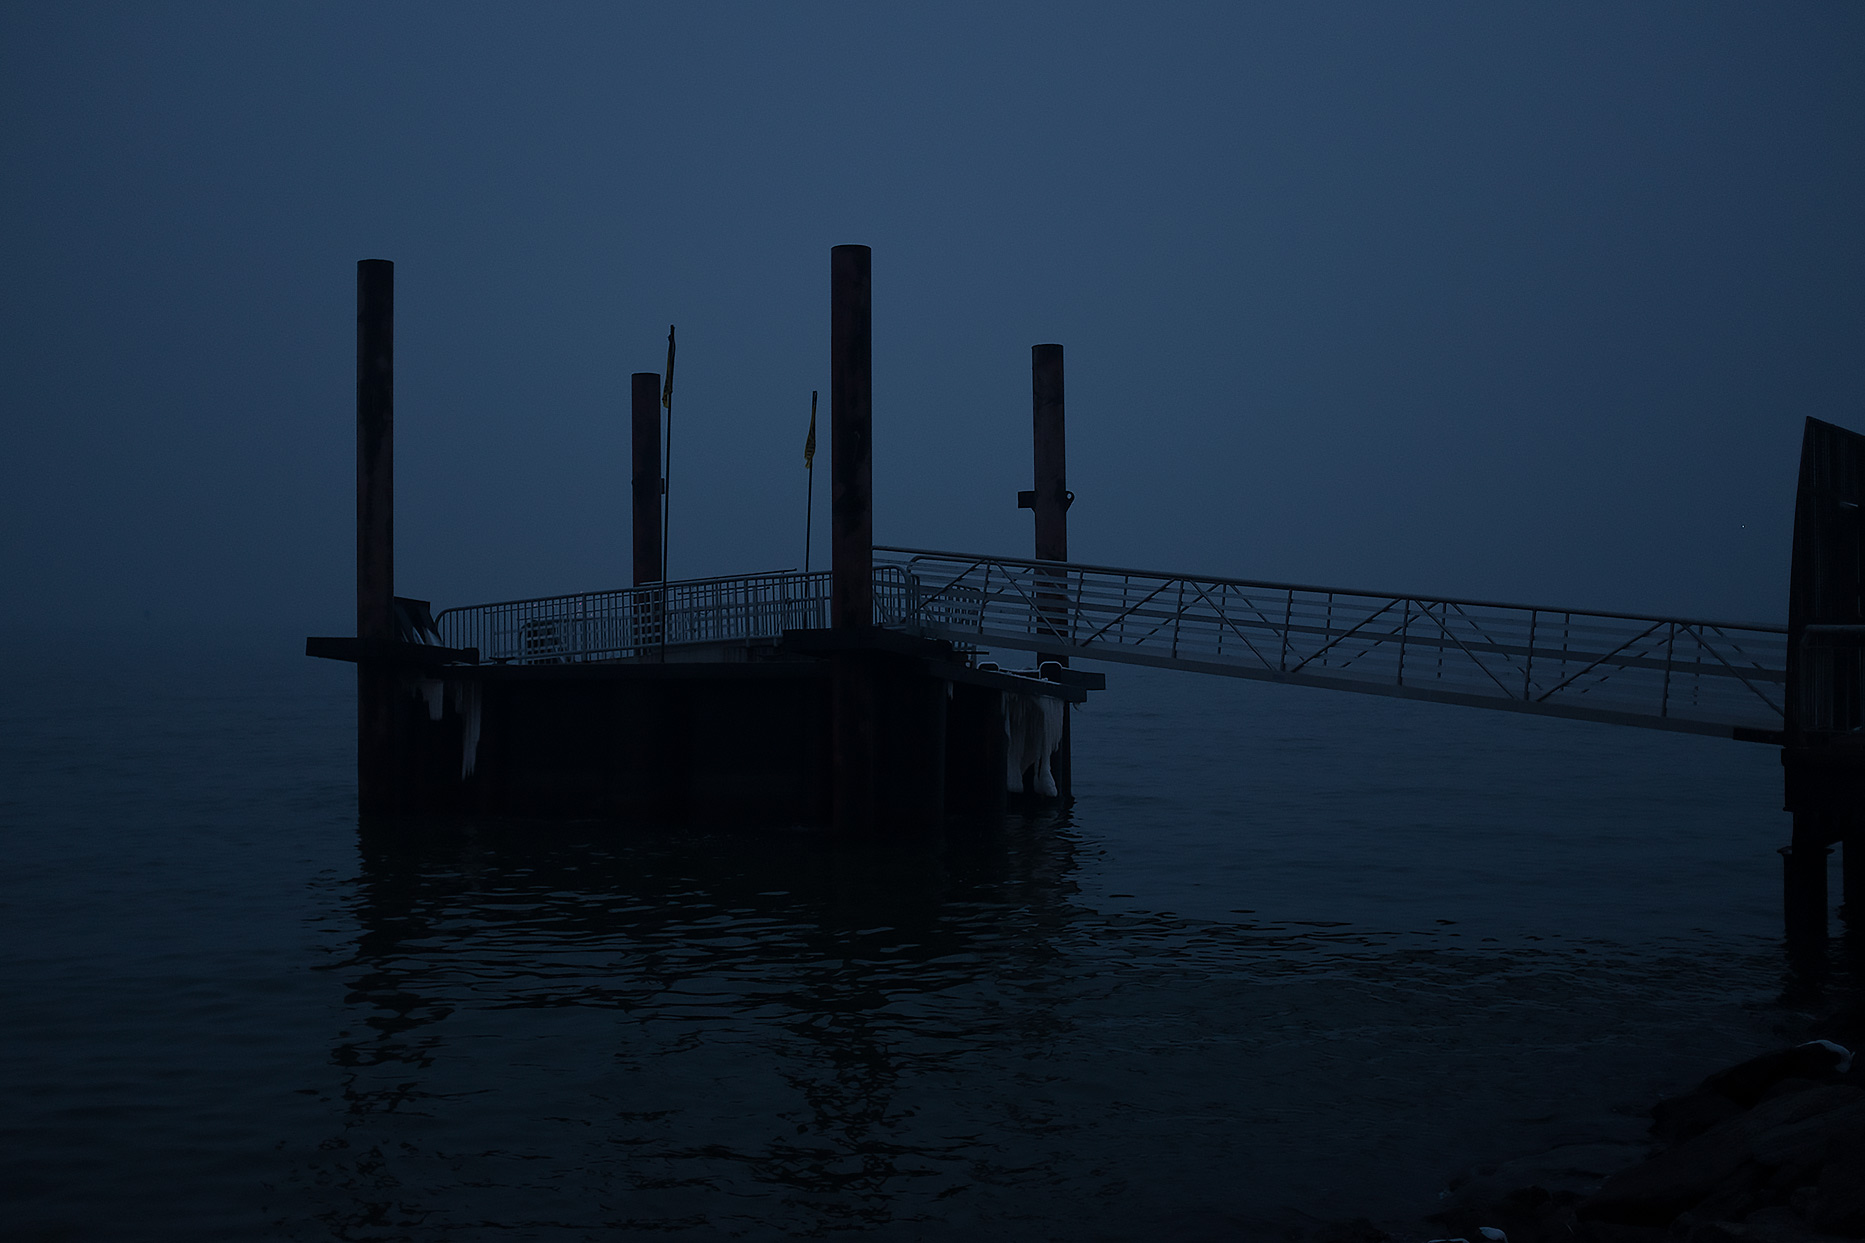 dock-in-blue-misty-fog-red-hook-pier